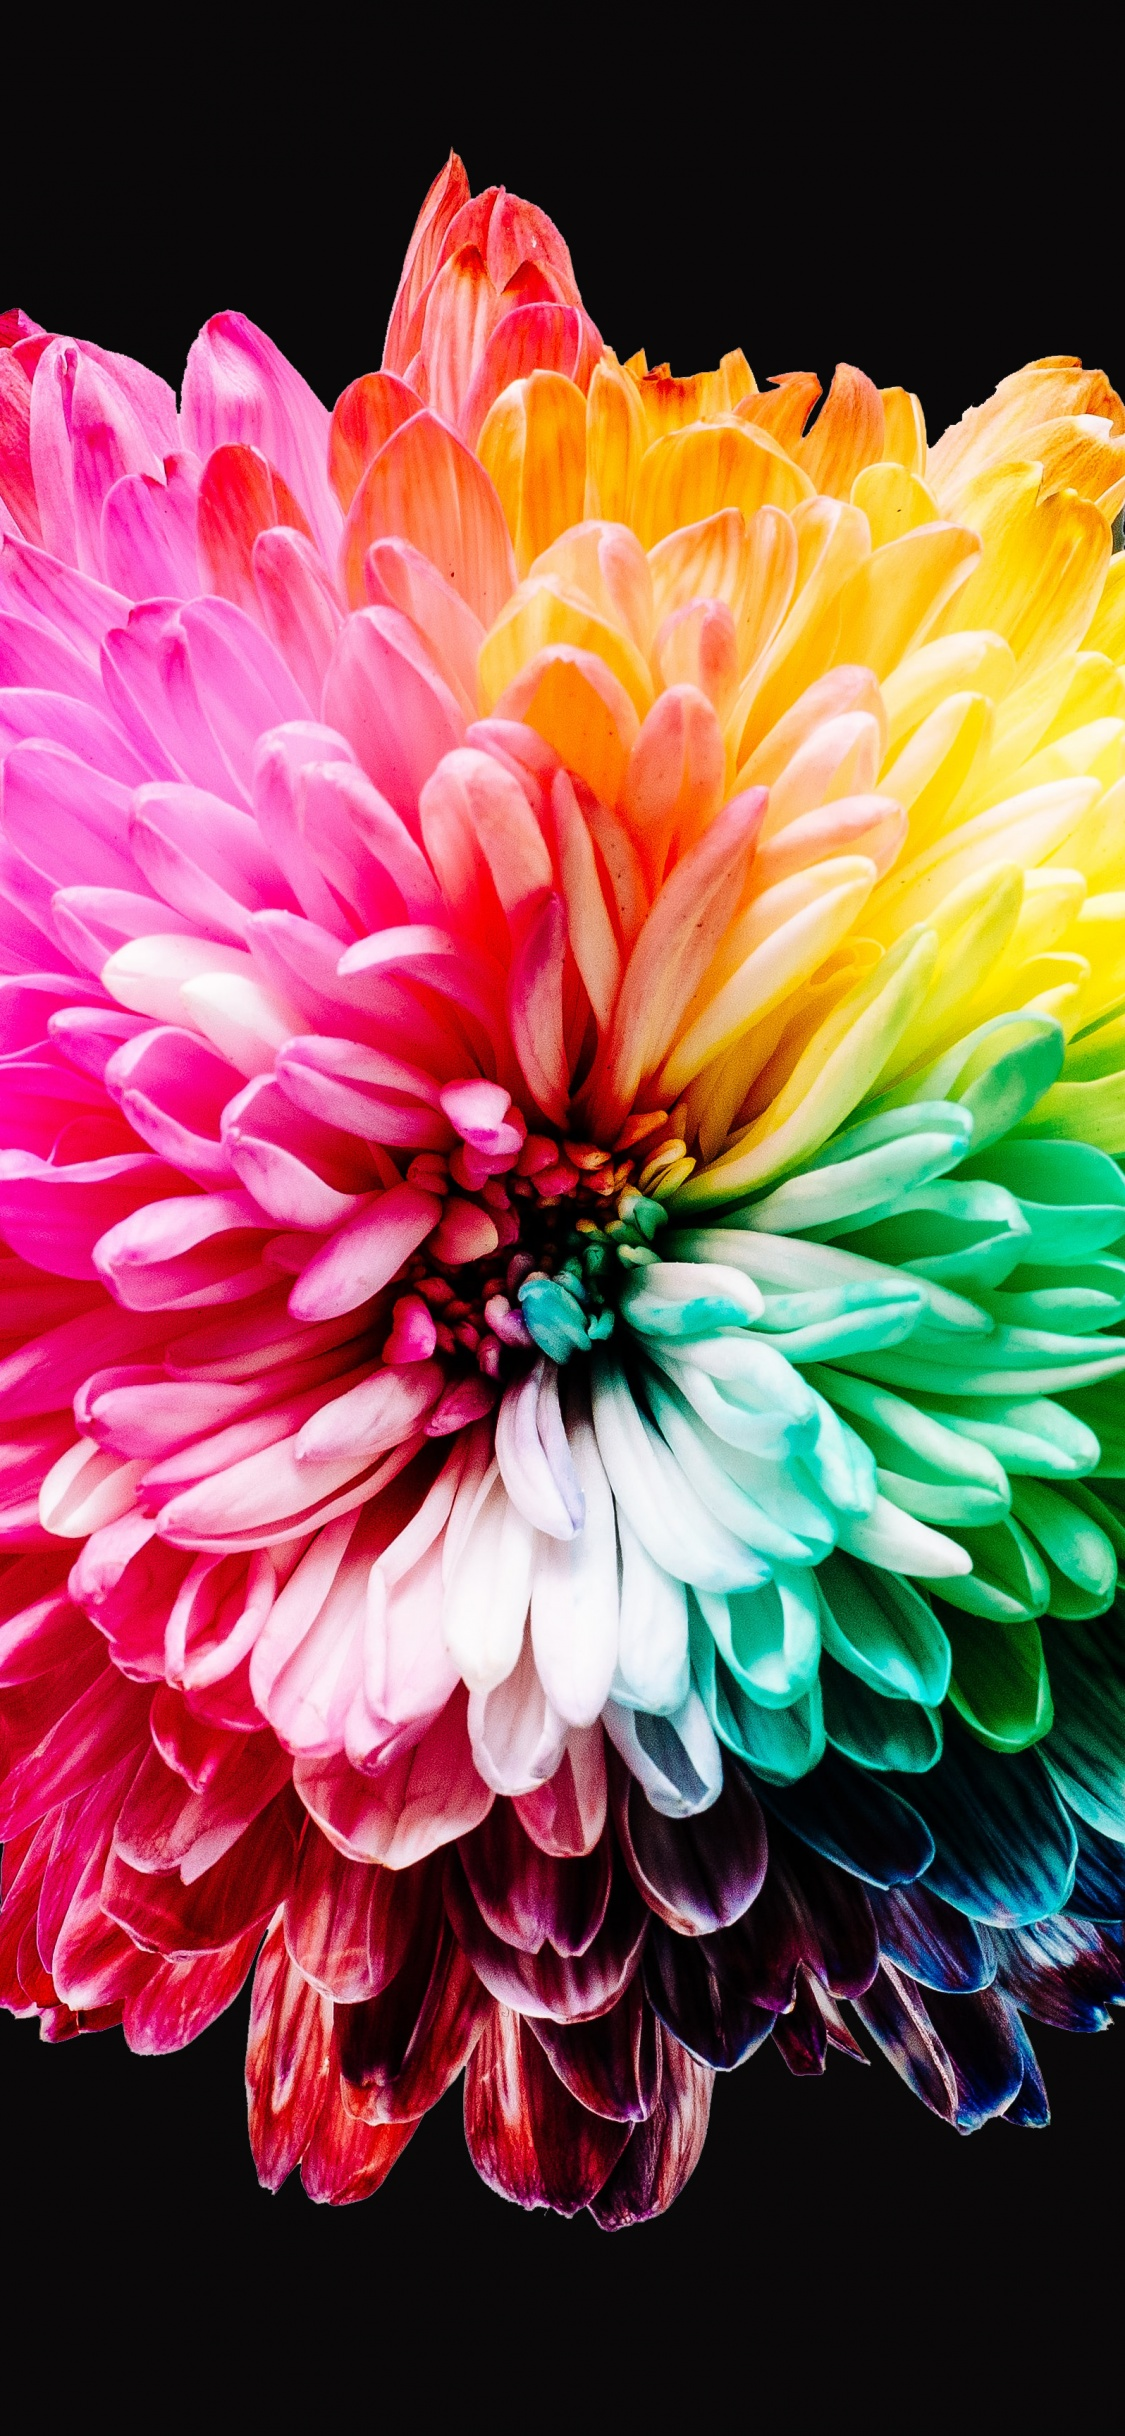 This is the 4k desktop background resolution for ultra high definition displays. Colorful flowers Wallpaper 4K, Multicolor, Black background, 5K, Flowers, #1258